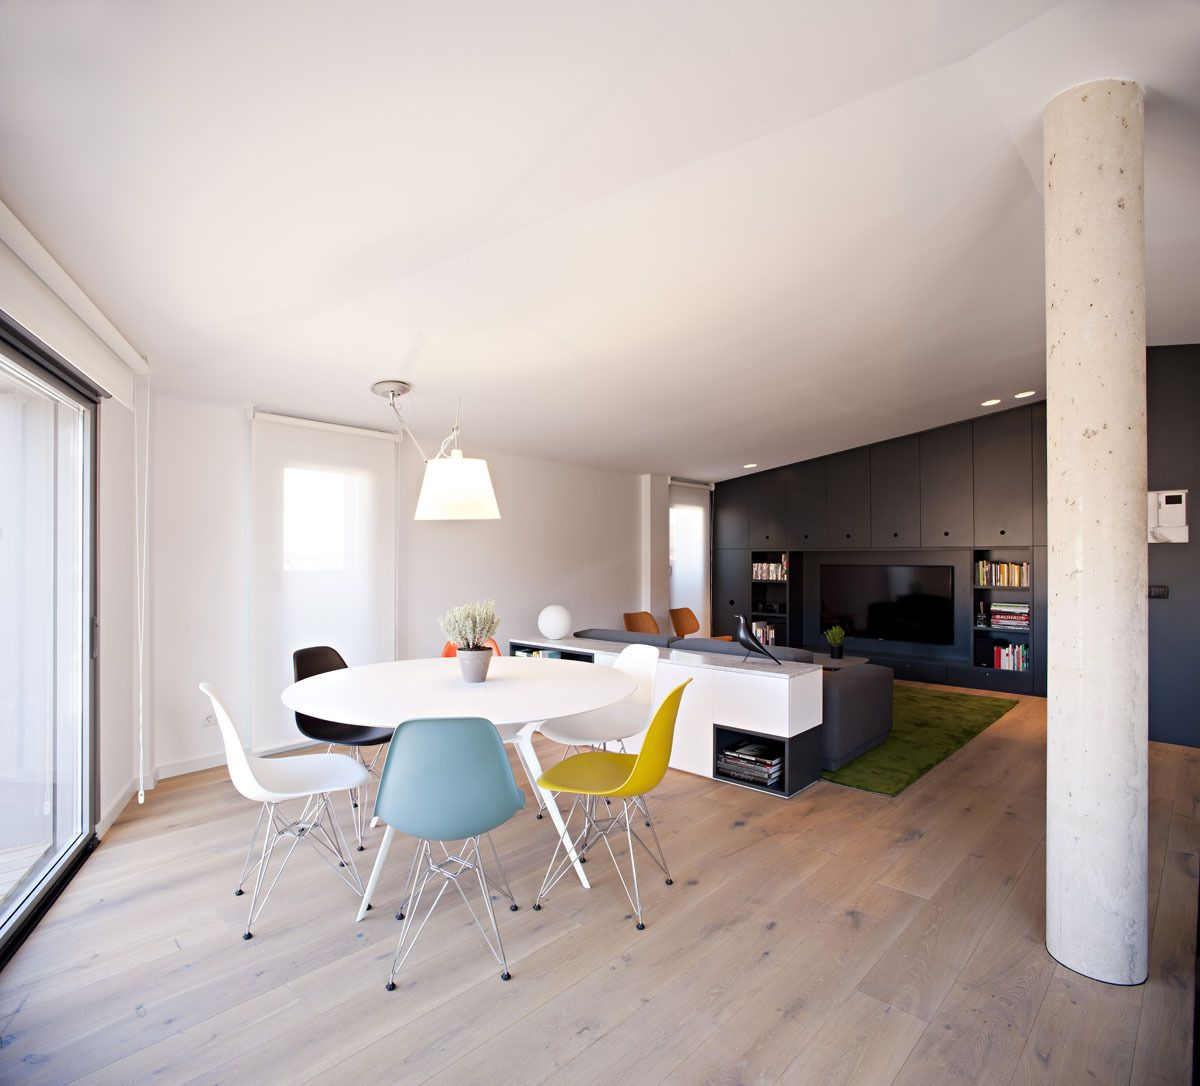 Interior Modern Duplex Ingenious Apartment Design For A Young Couple 0710 PZG